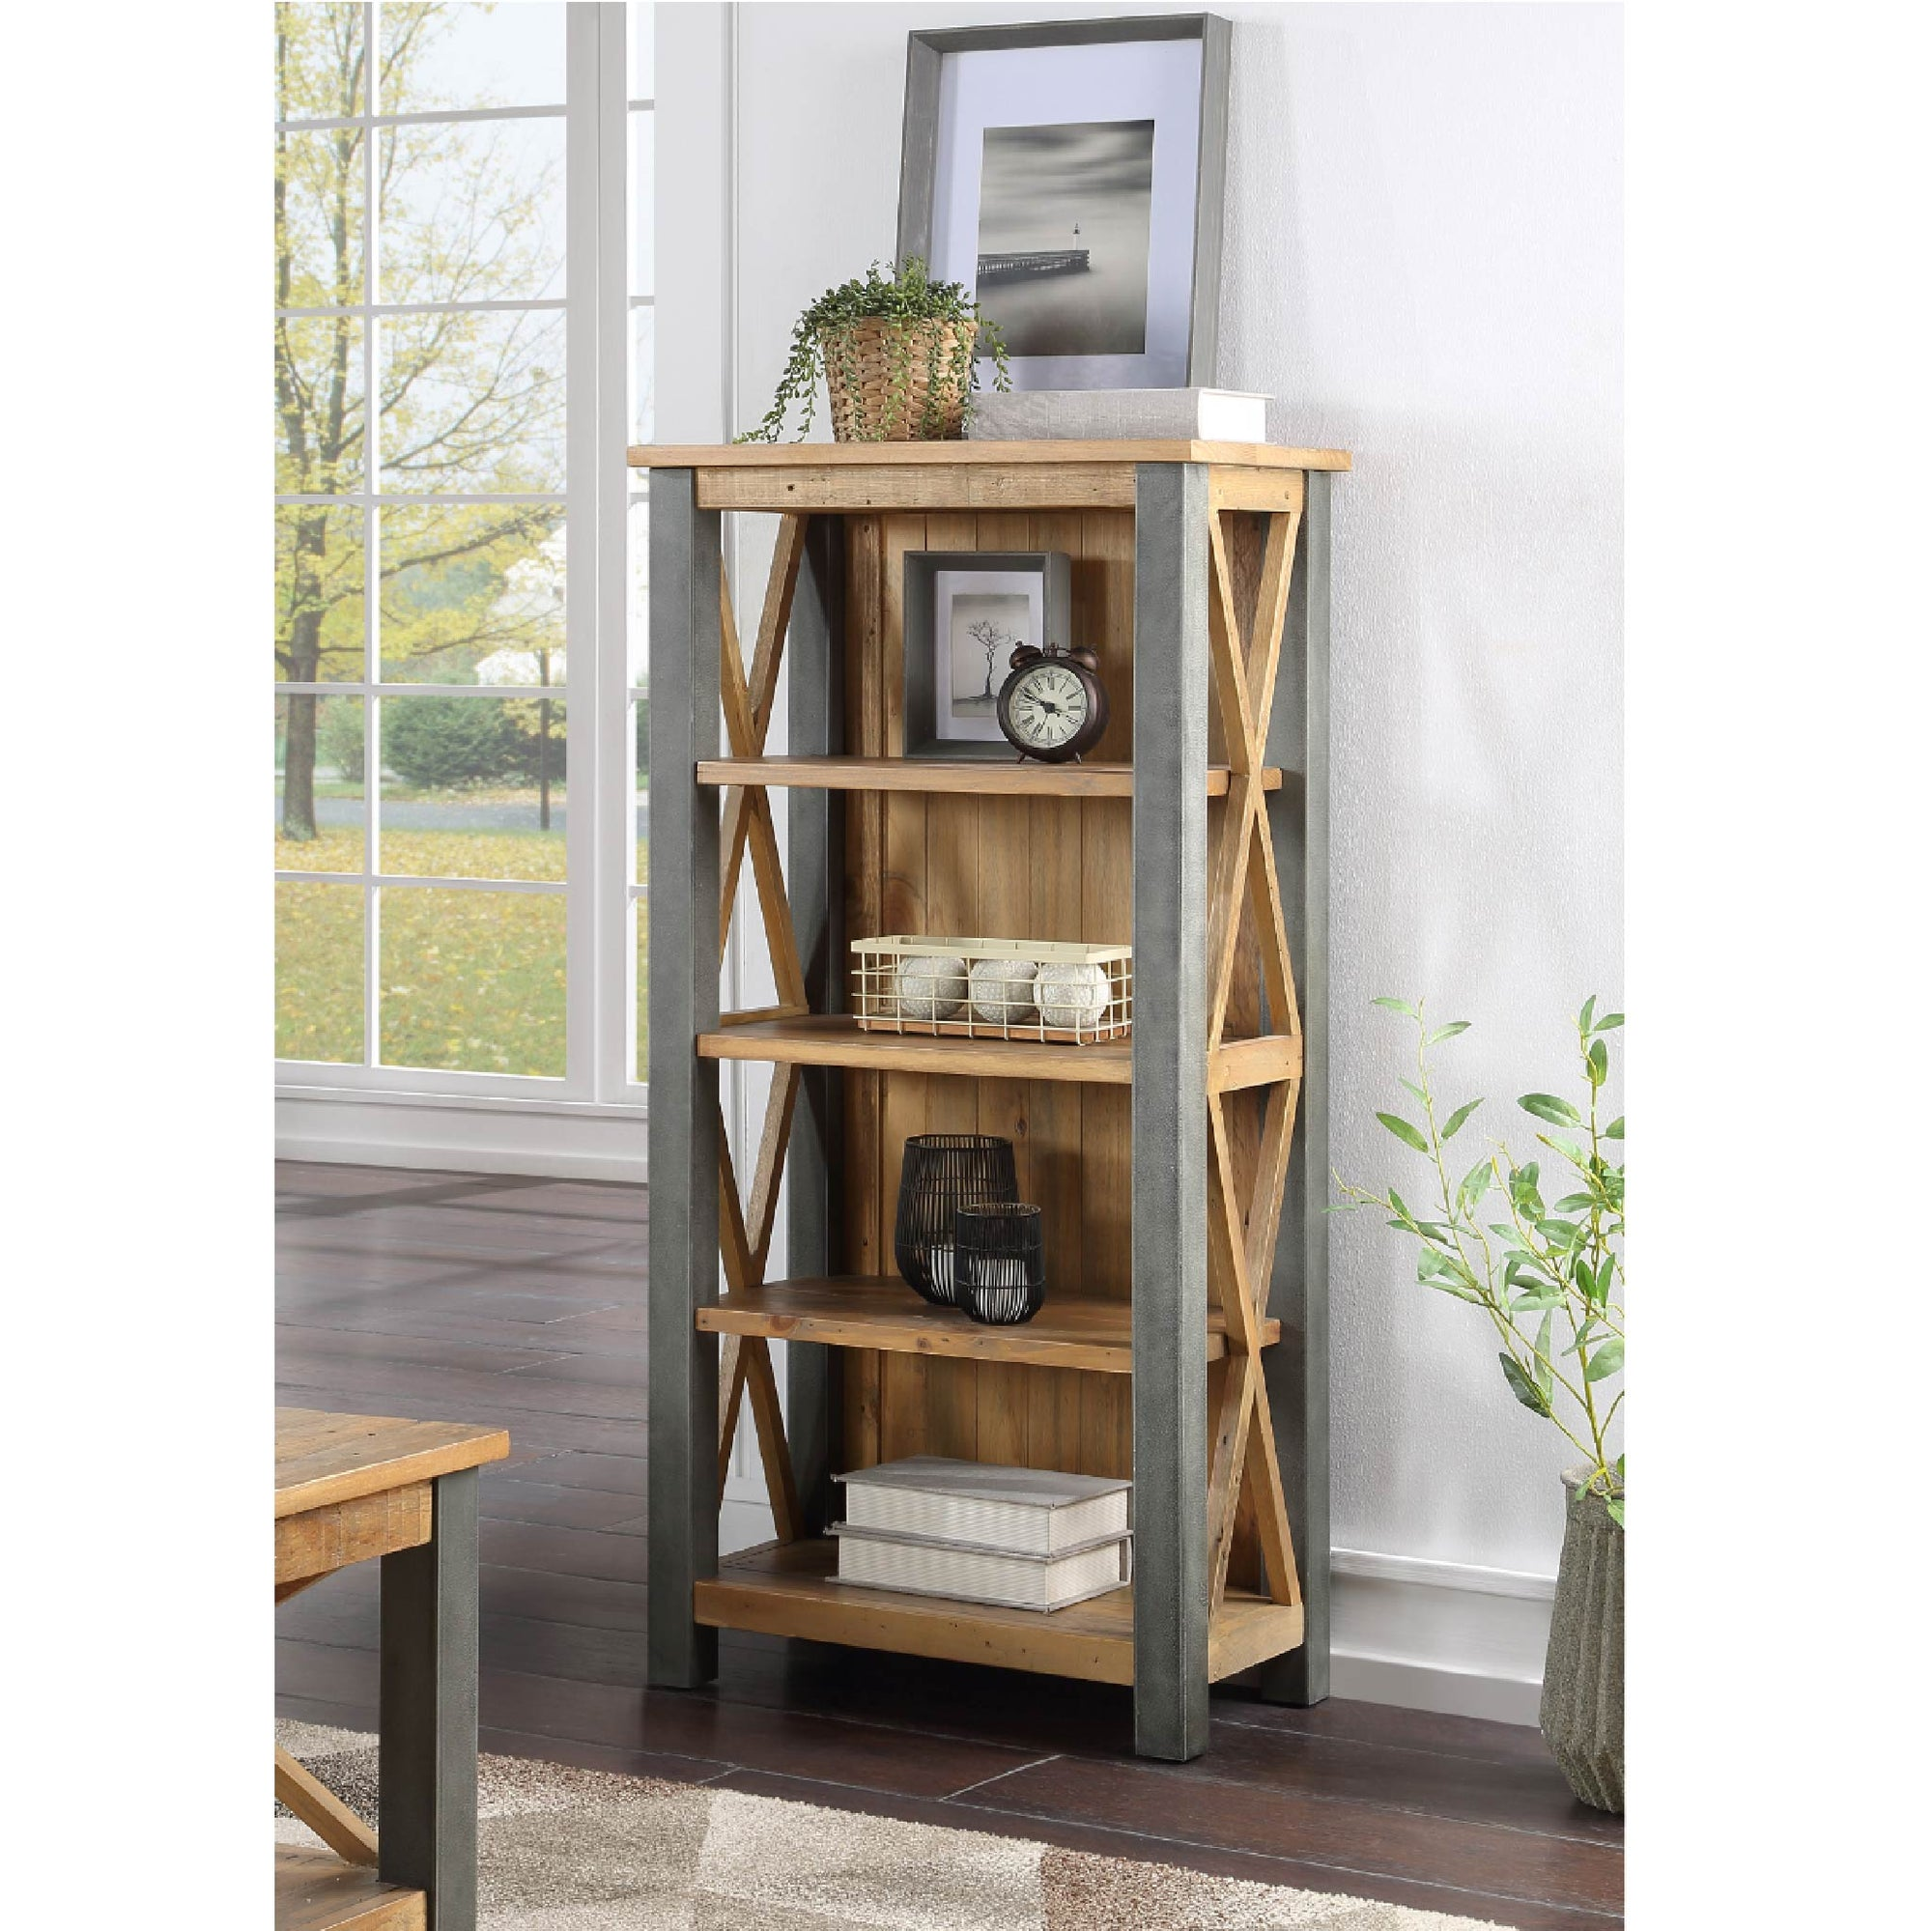 Urban Elegance Reclaimed Wood & Steel Frame Small Bookcase